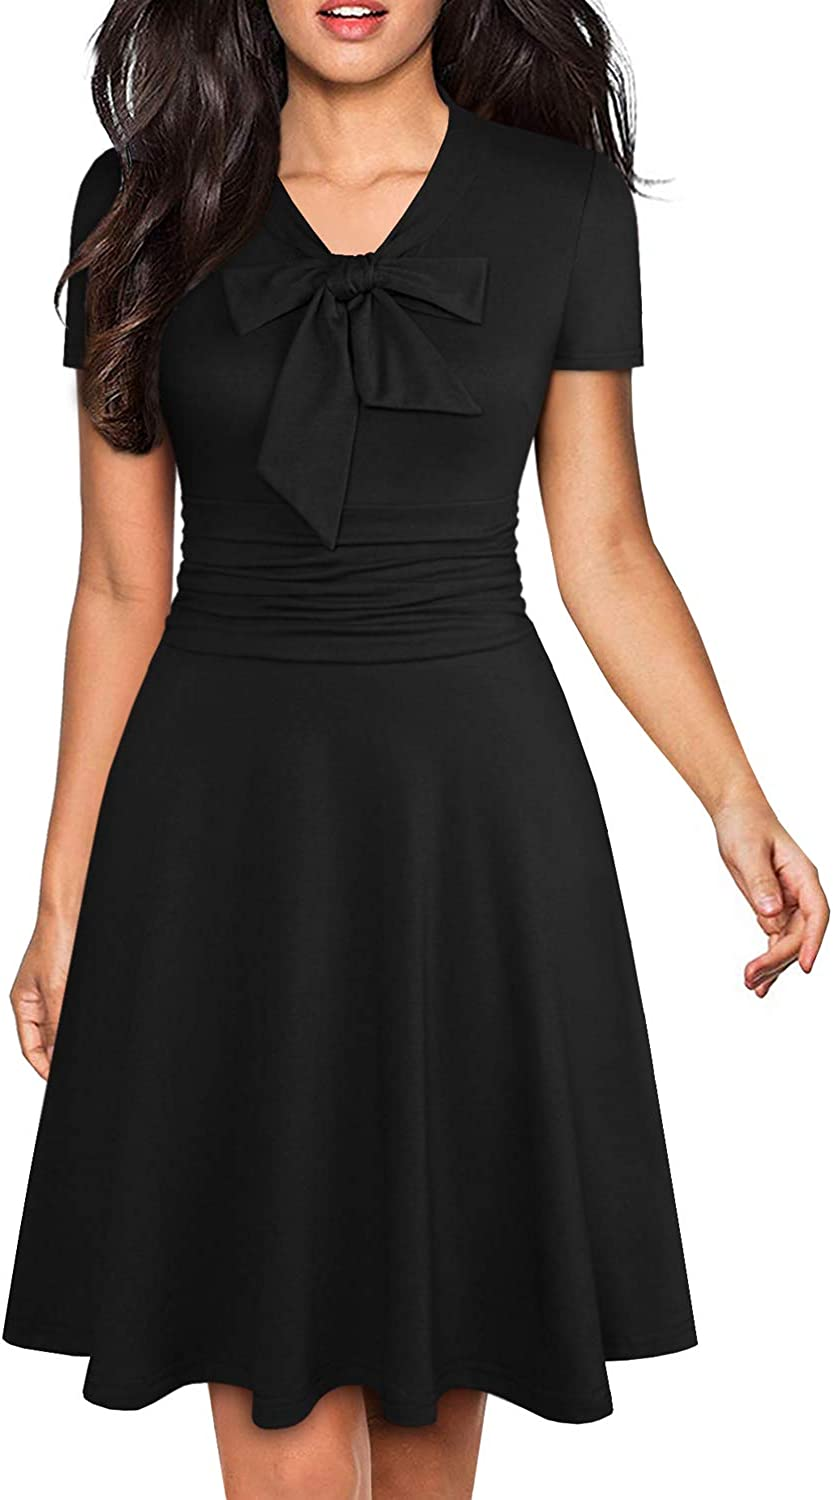 YATHON Women's Elegant Bow Tie Swing Casual Party Dresses Vintage Ruched Stretchy A-line Skater Dress